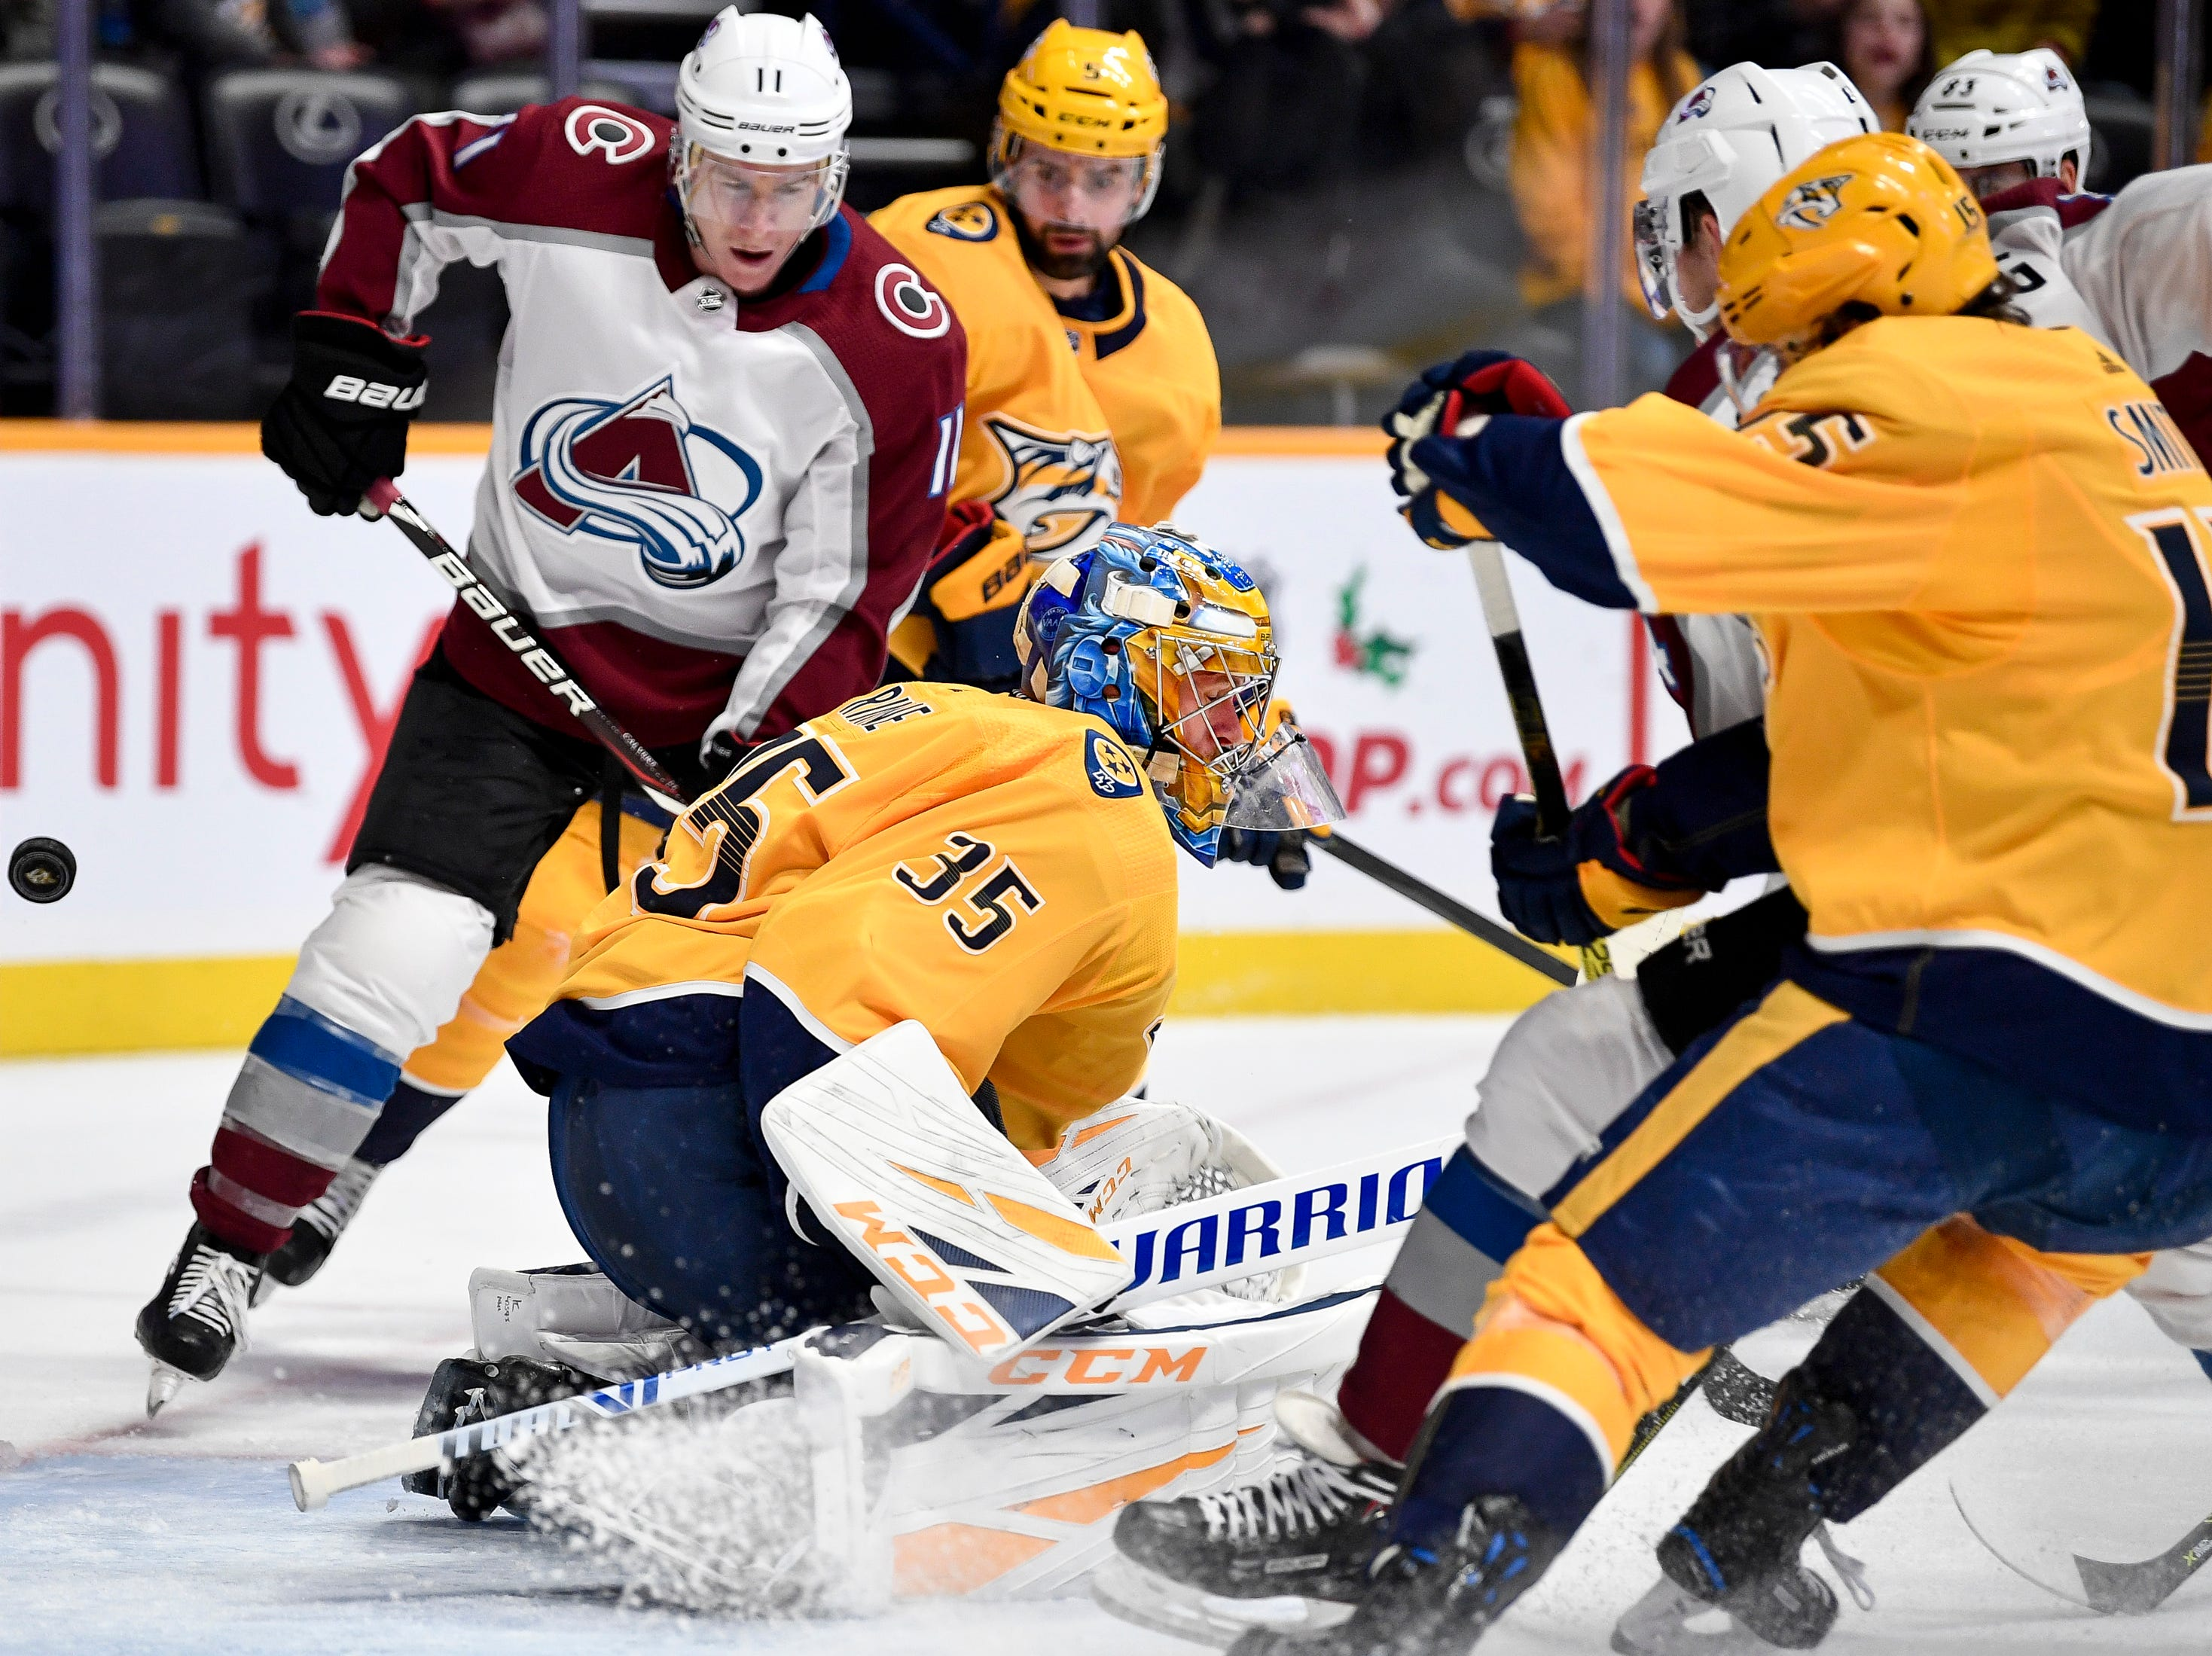 A Colorado Avalanche shot bounces off of the goal behind Nashville Predators goaltender Pekka Rinne (35) during the second period at Bridgestone Arena in Nashville, Tenn., Tuesday, Nov. 27, 2018.